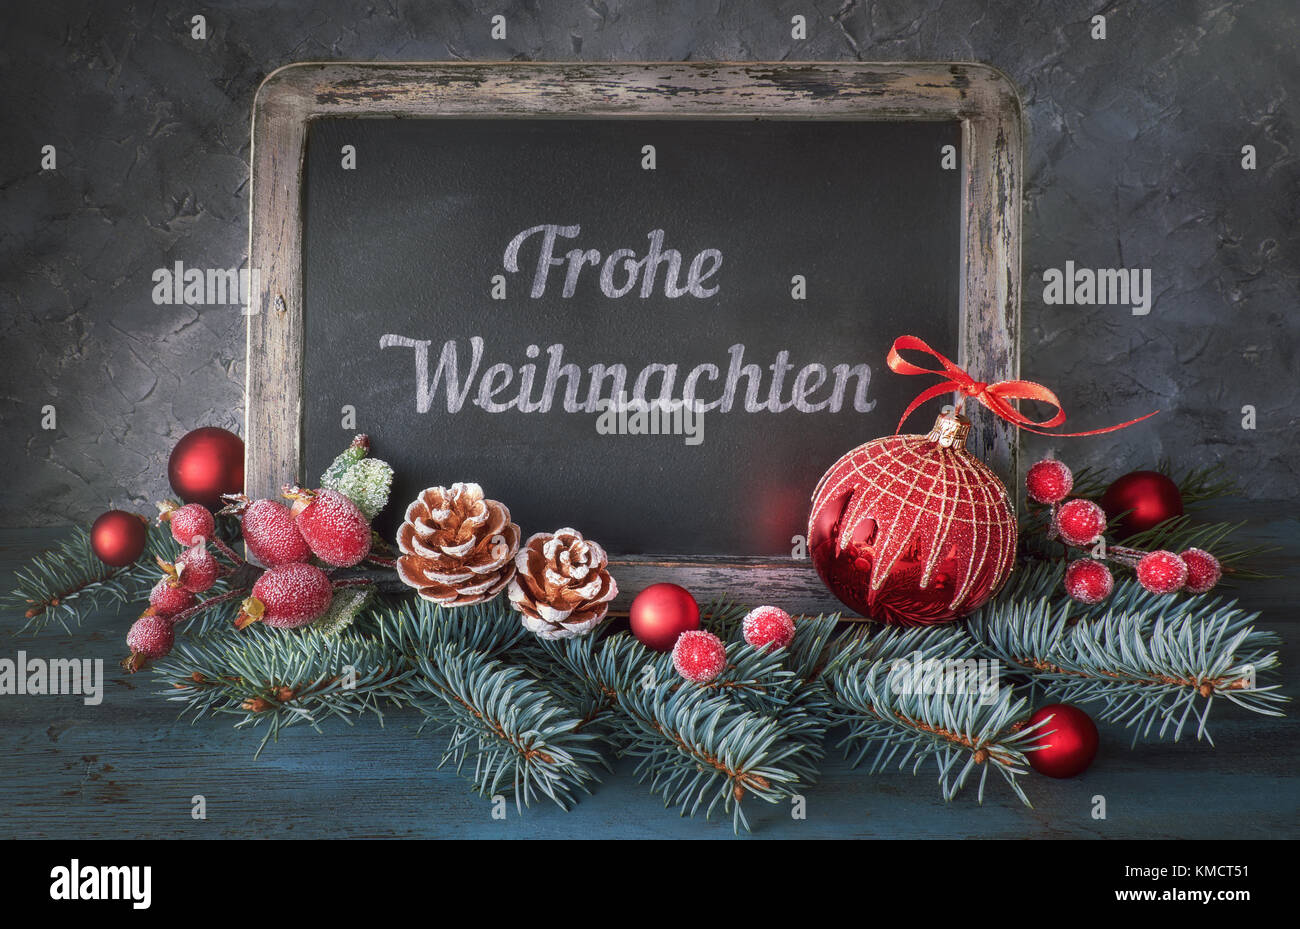 merry christmas in german stock photos merry christmas. Black Bedroom Furniture Sets. Home Design Ideas